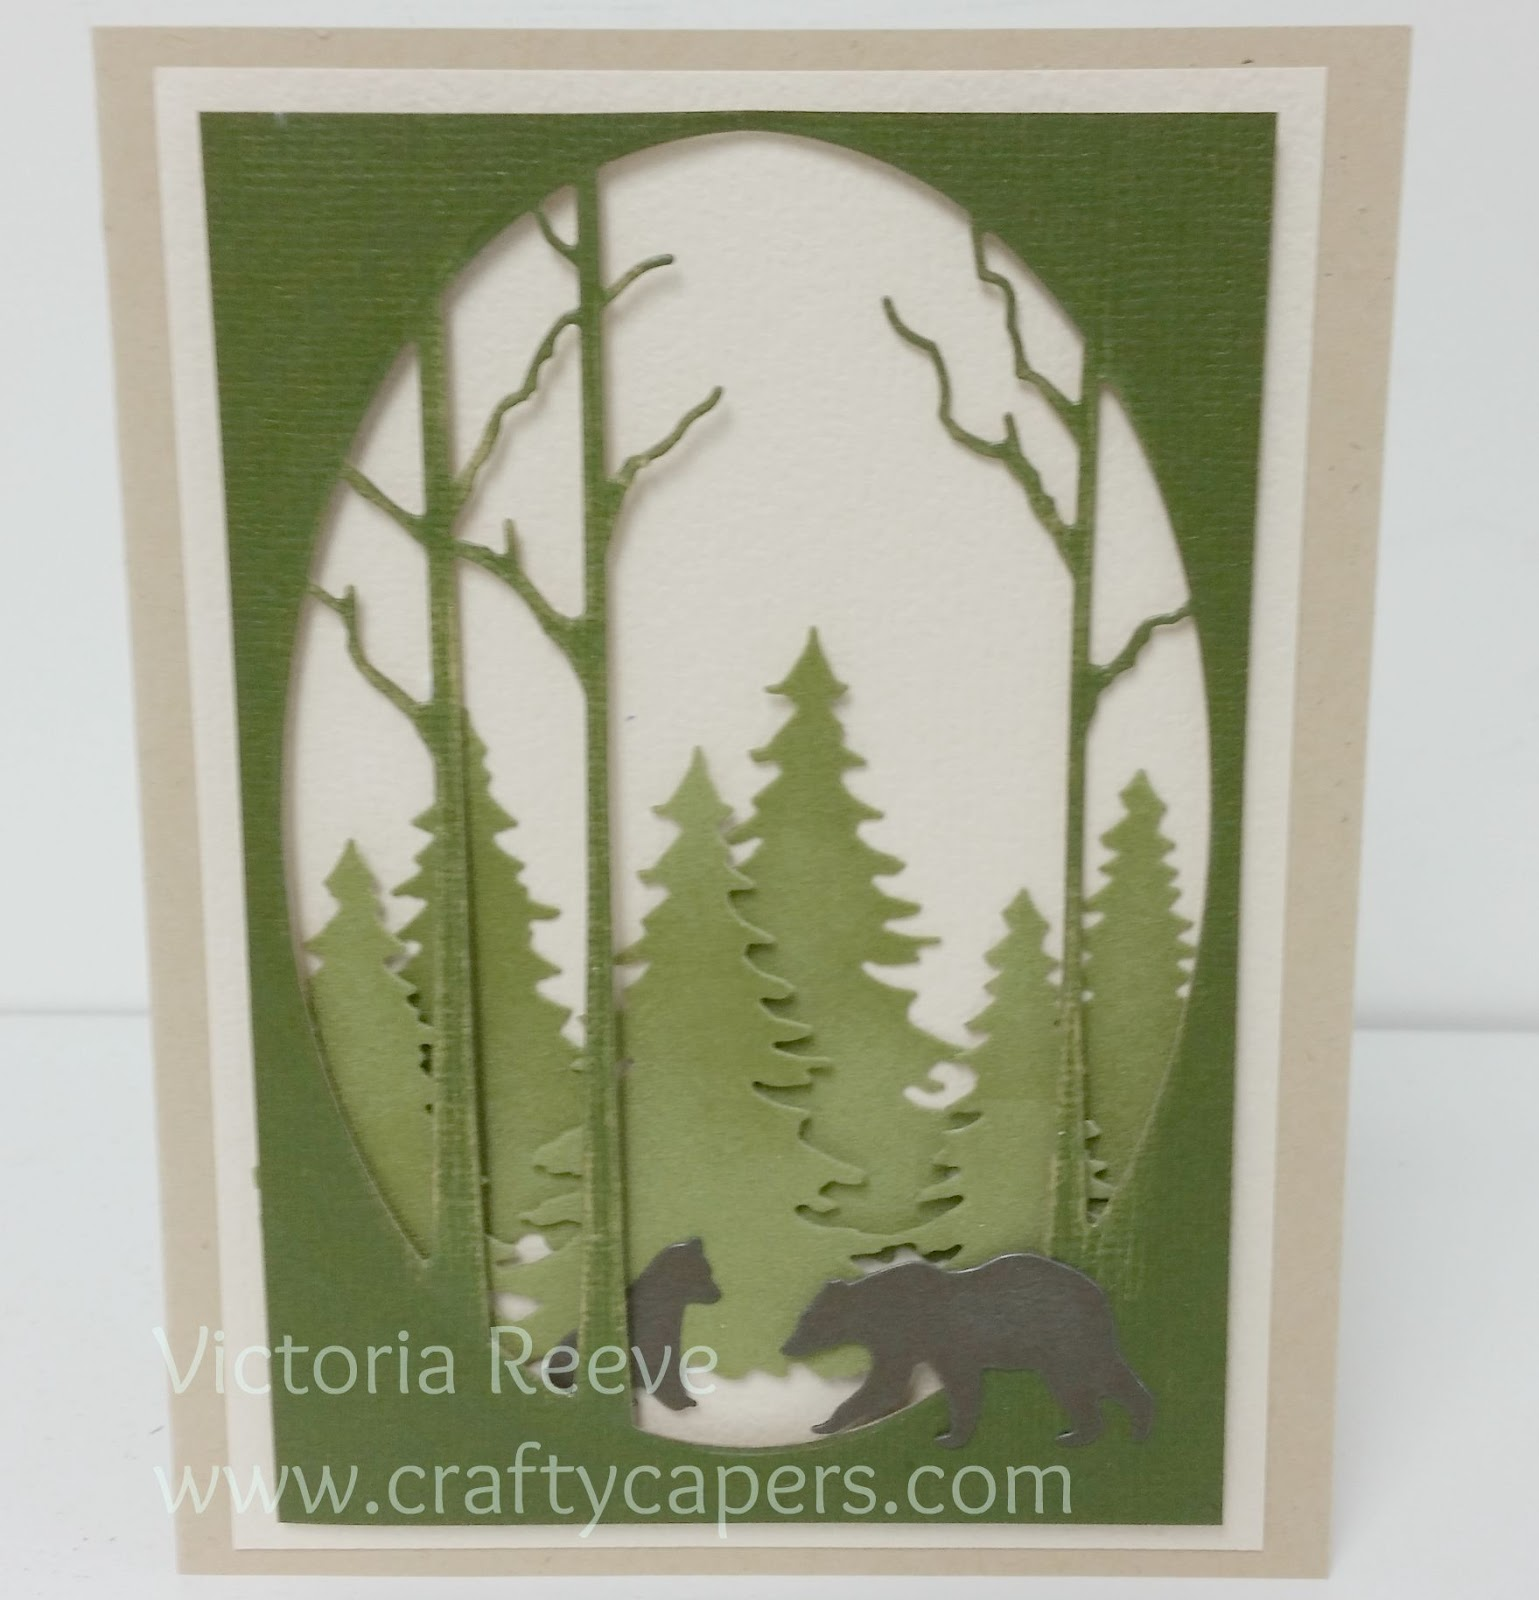 Crafty Capers Rubber Stamps New Memory Box Card Sample